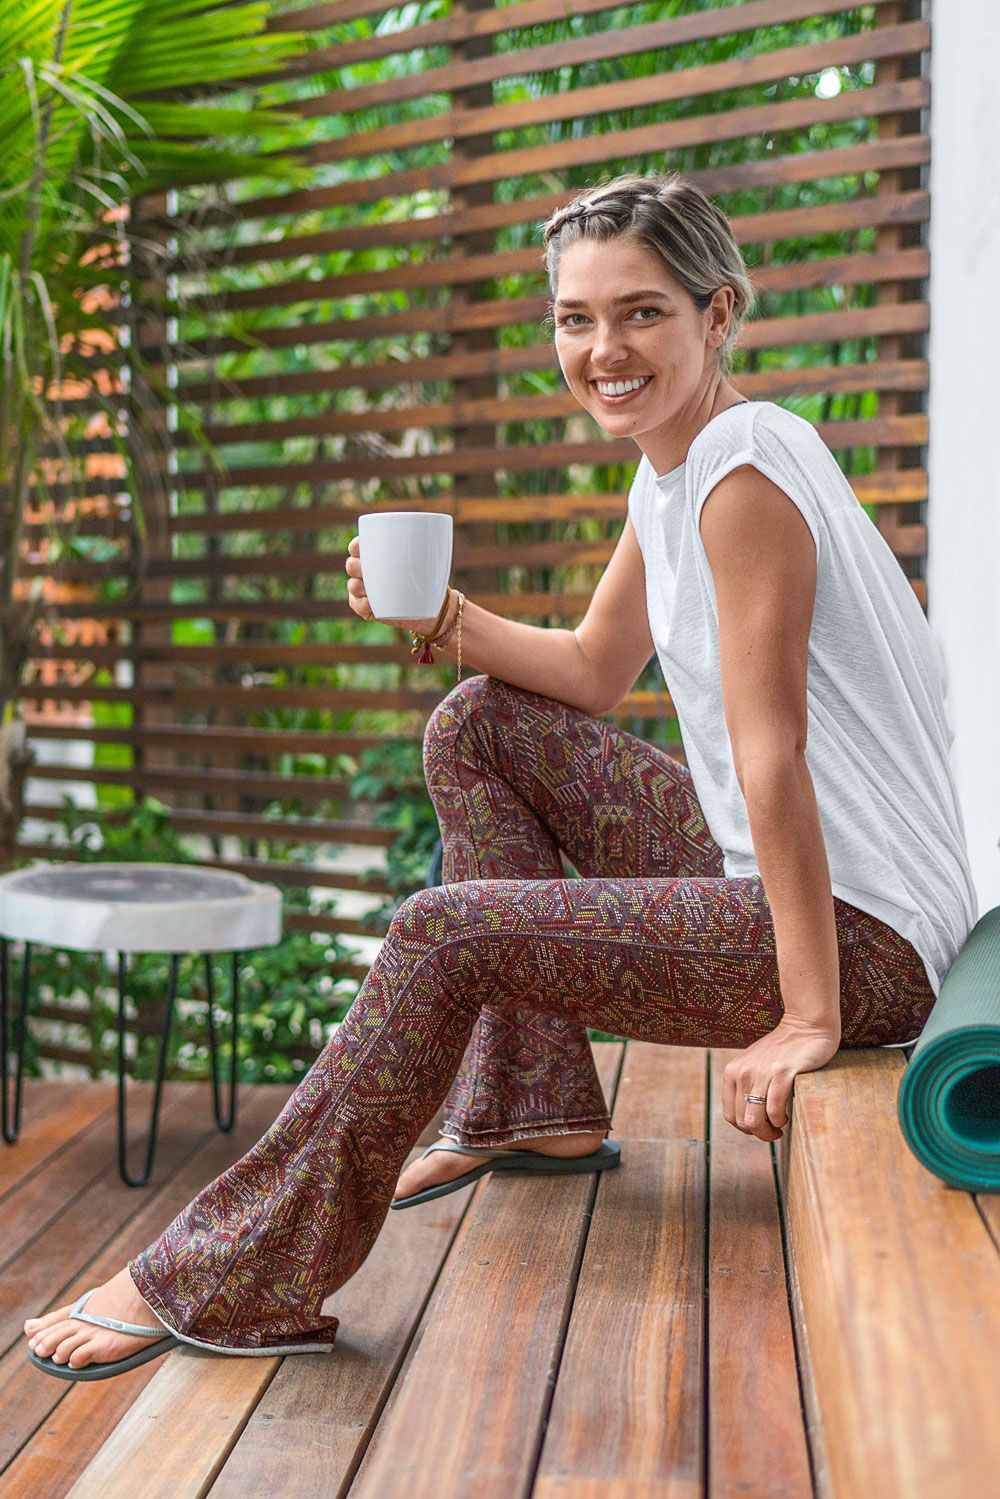 The sustainably sourced prAna Juniper pant demonstrates that the yoga studio can be a place for pers